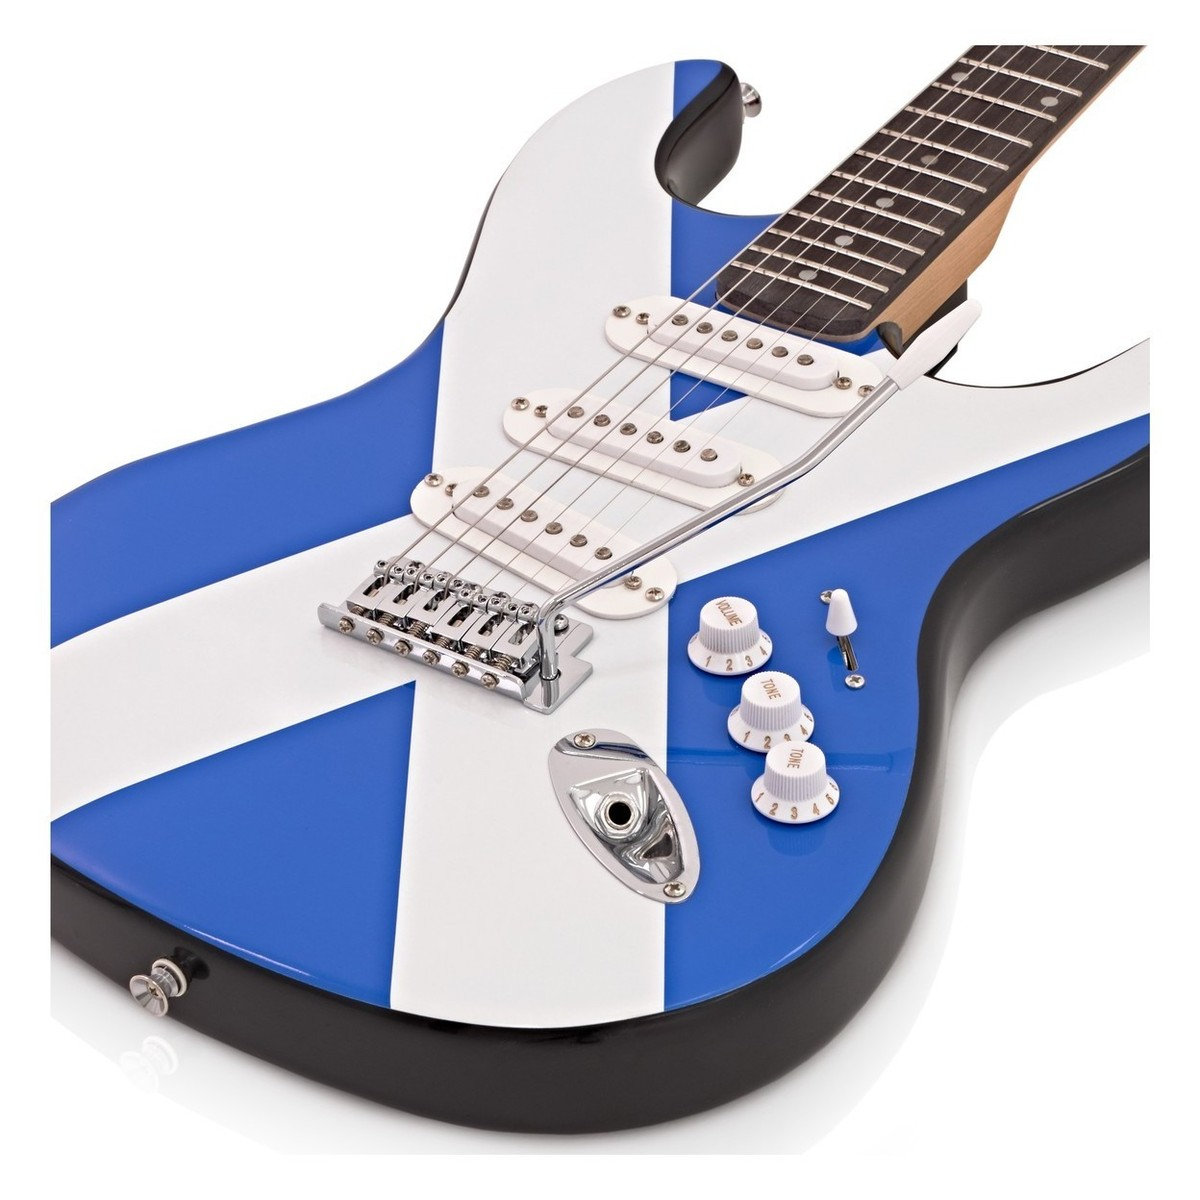 la electric guitar amp pack scottish flag at. Black Bedroom Furniture Sets. Home Design Ideas